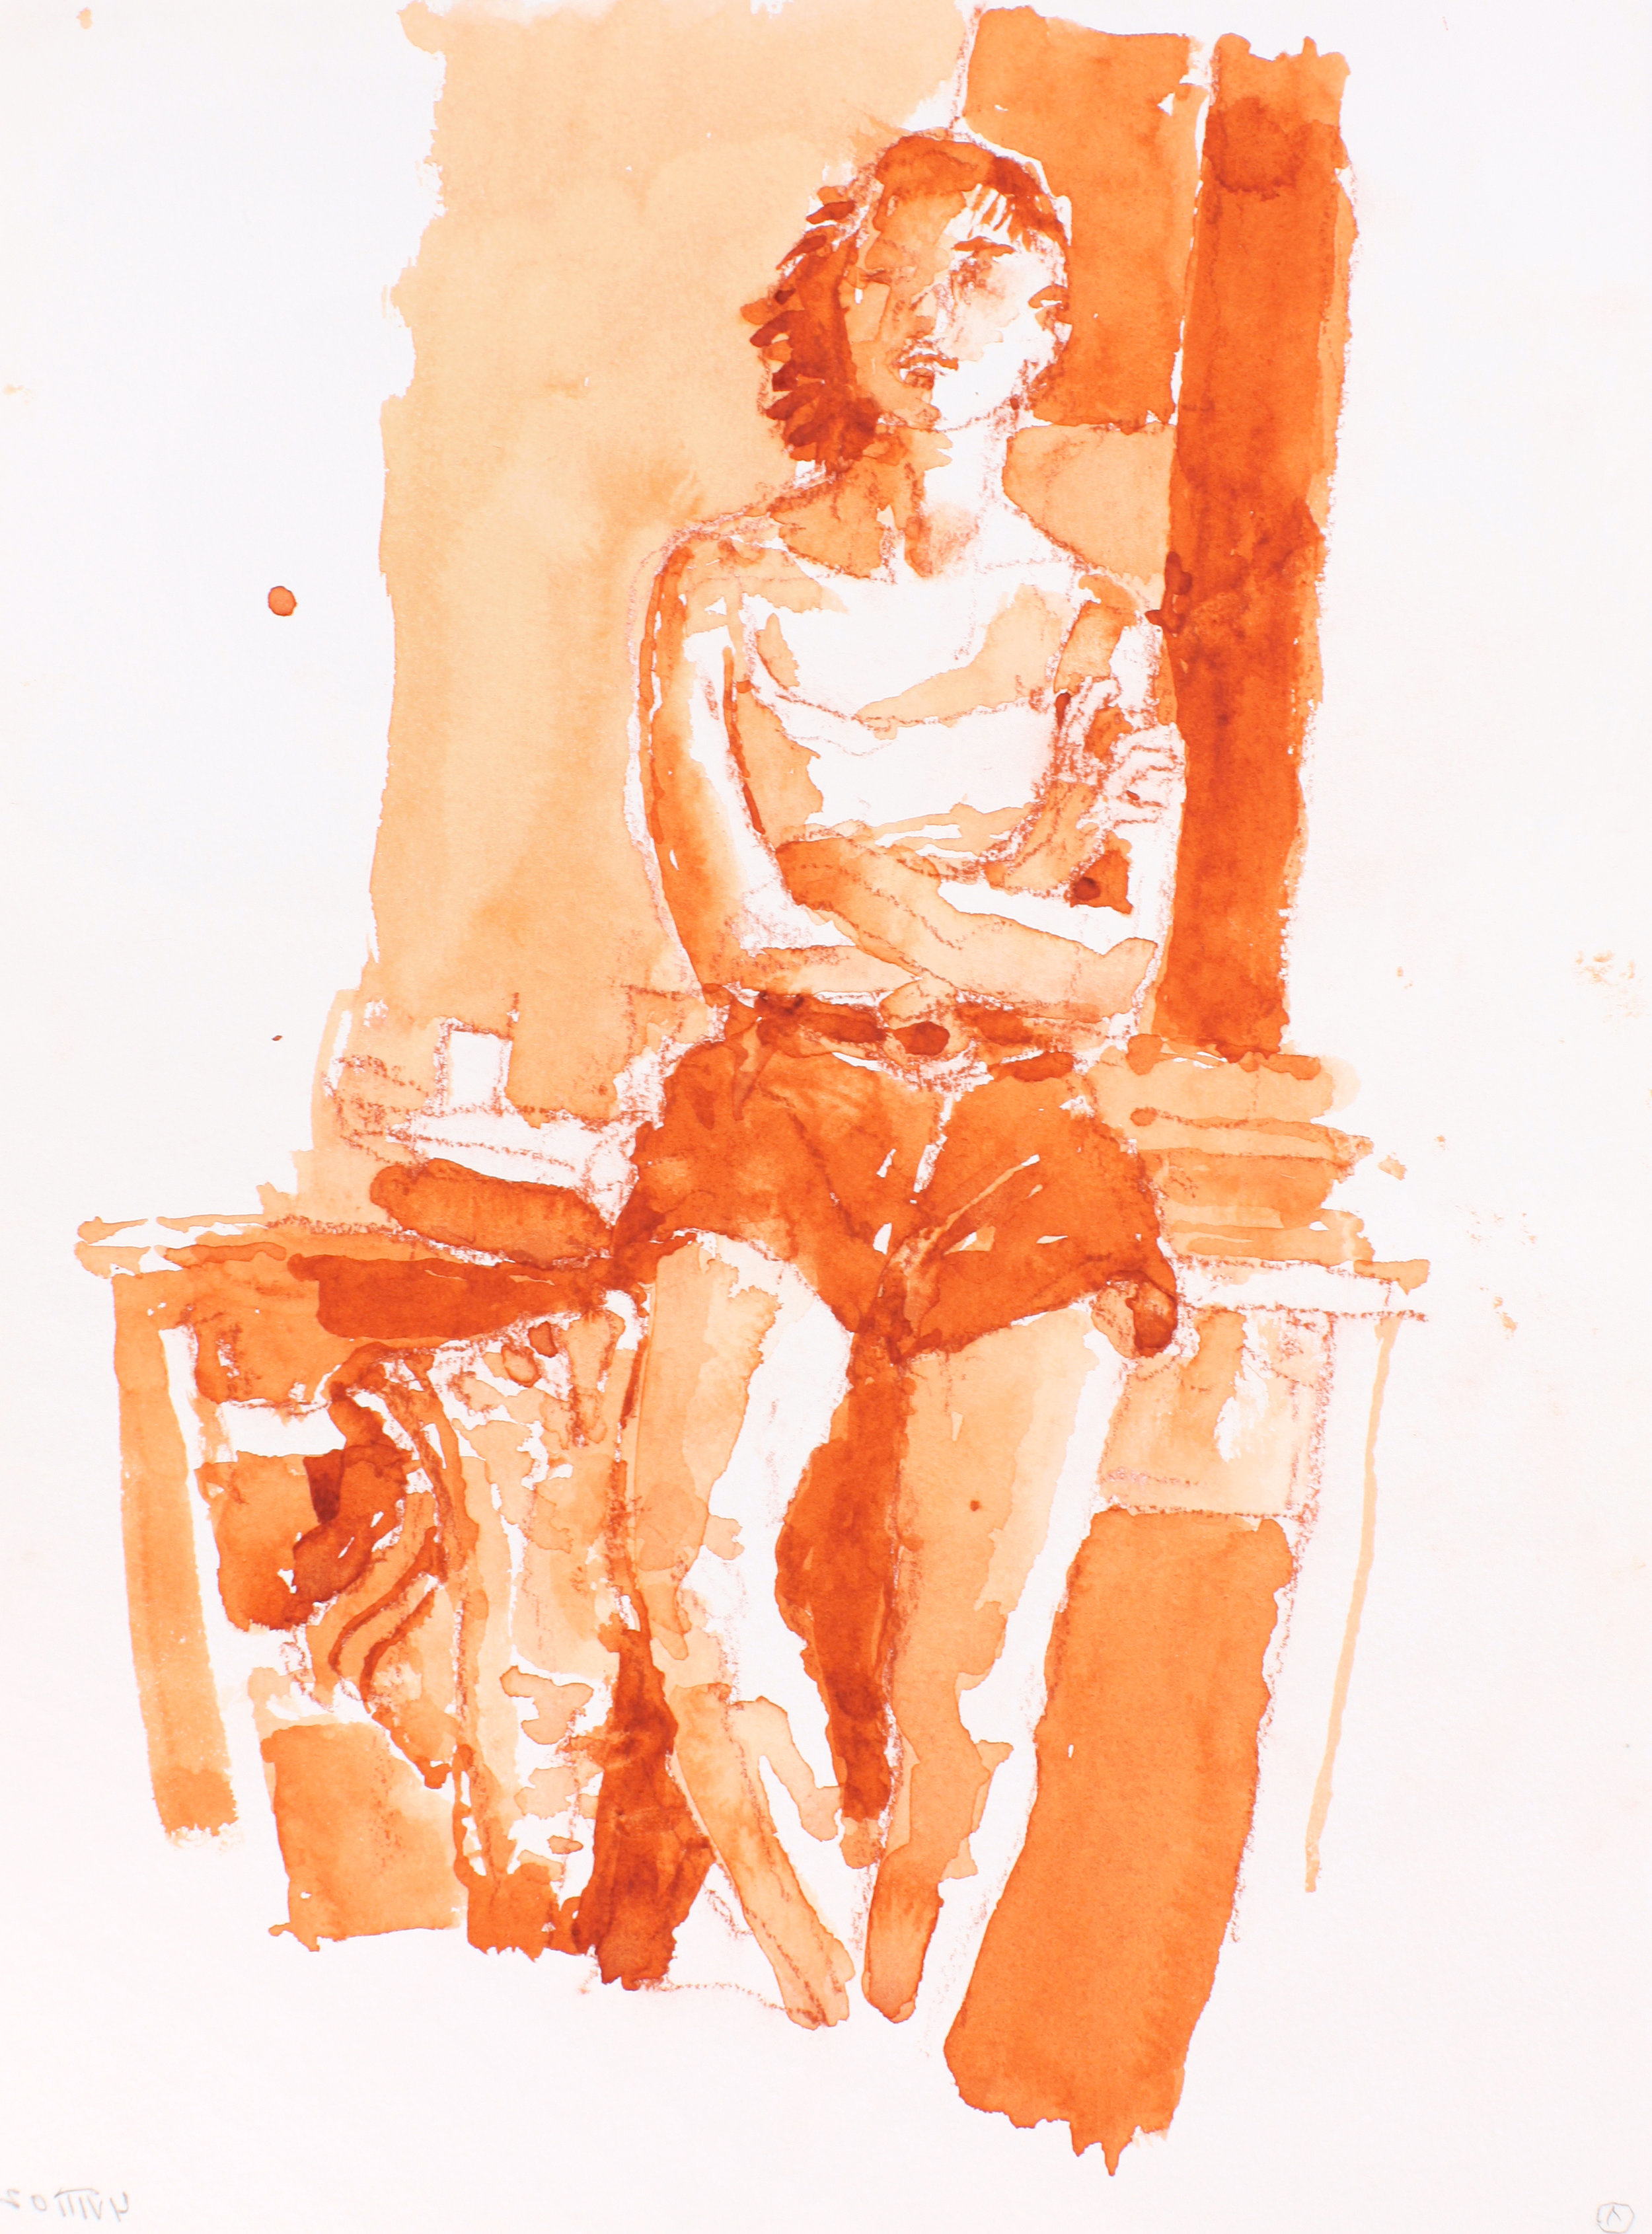 2002_Standing_Woman_in_Shorts__Leaning_Against_Table_watercolour_and_red_conté_on_paper_15x11in_WPF220.jpg